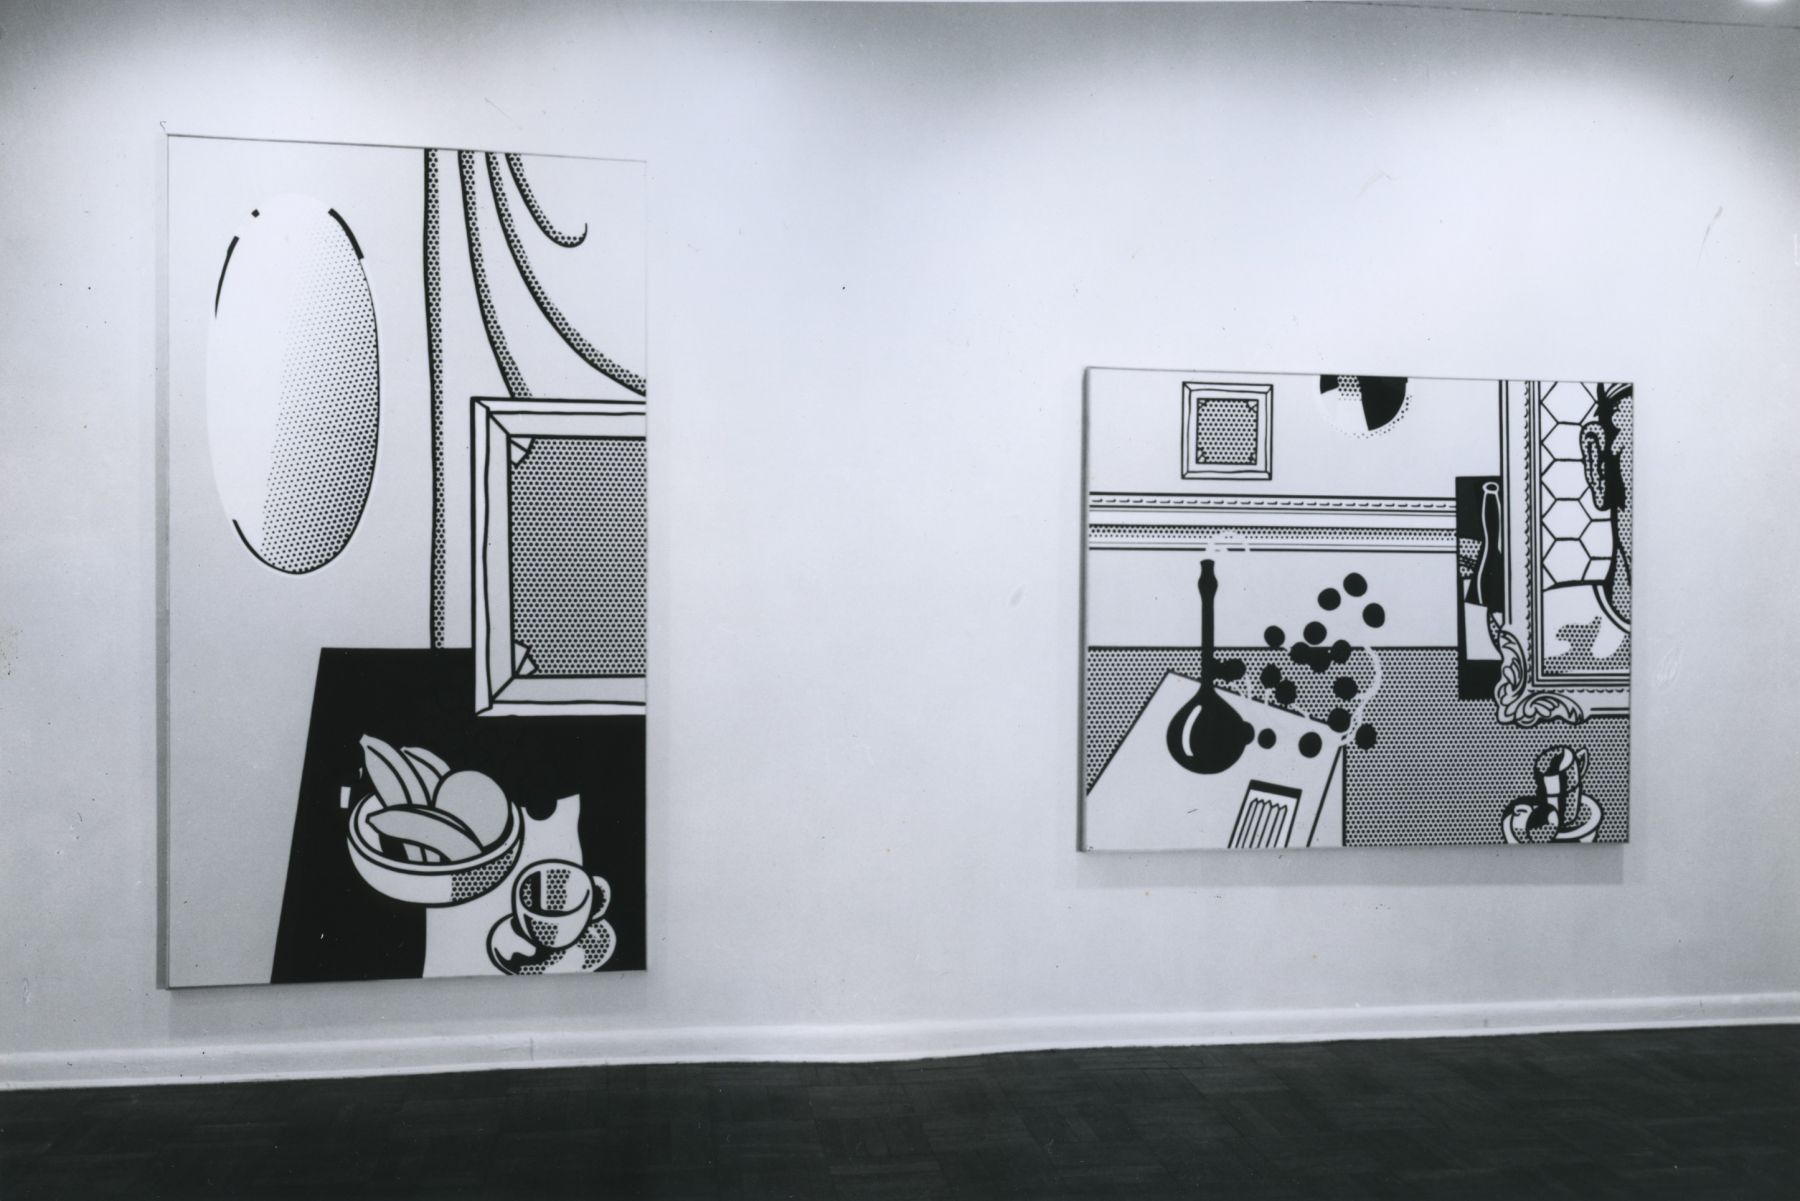 Installation view, Roy Lichtenstein: Still Lifes, 4 EAST 77